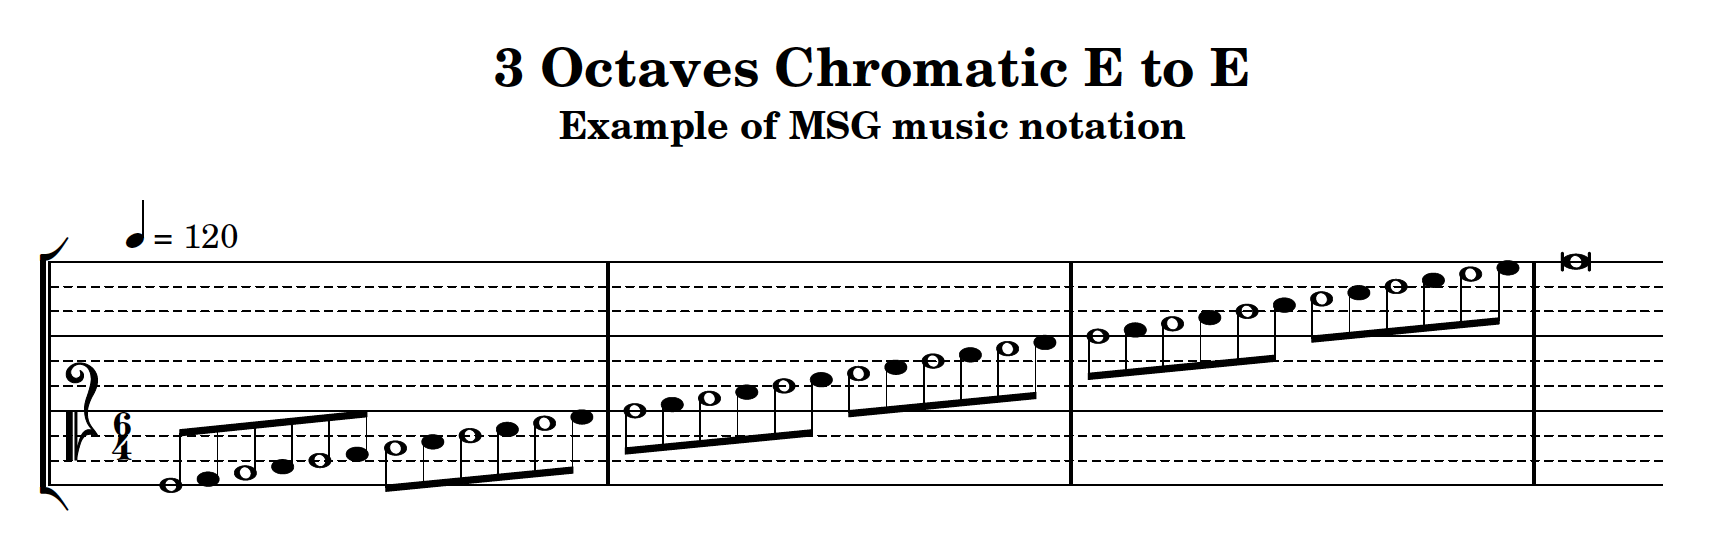 MSG-2016-3octaves